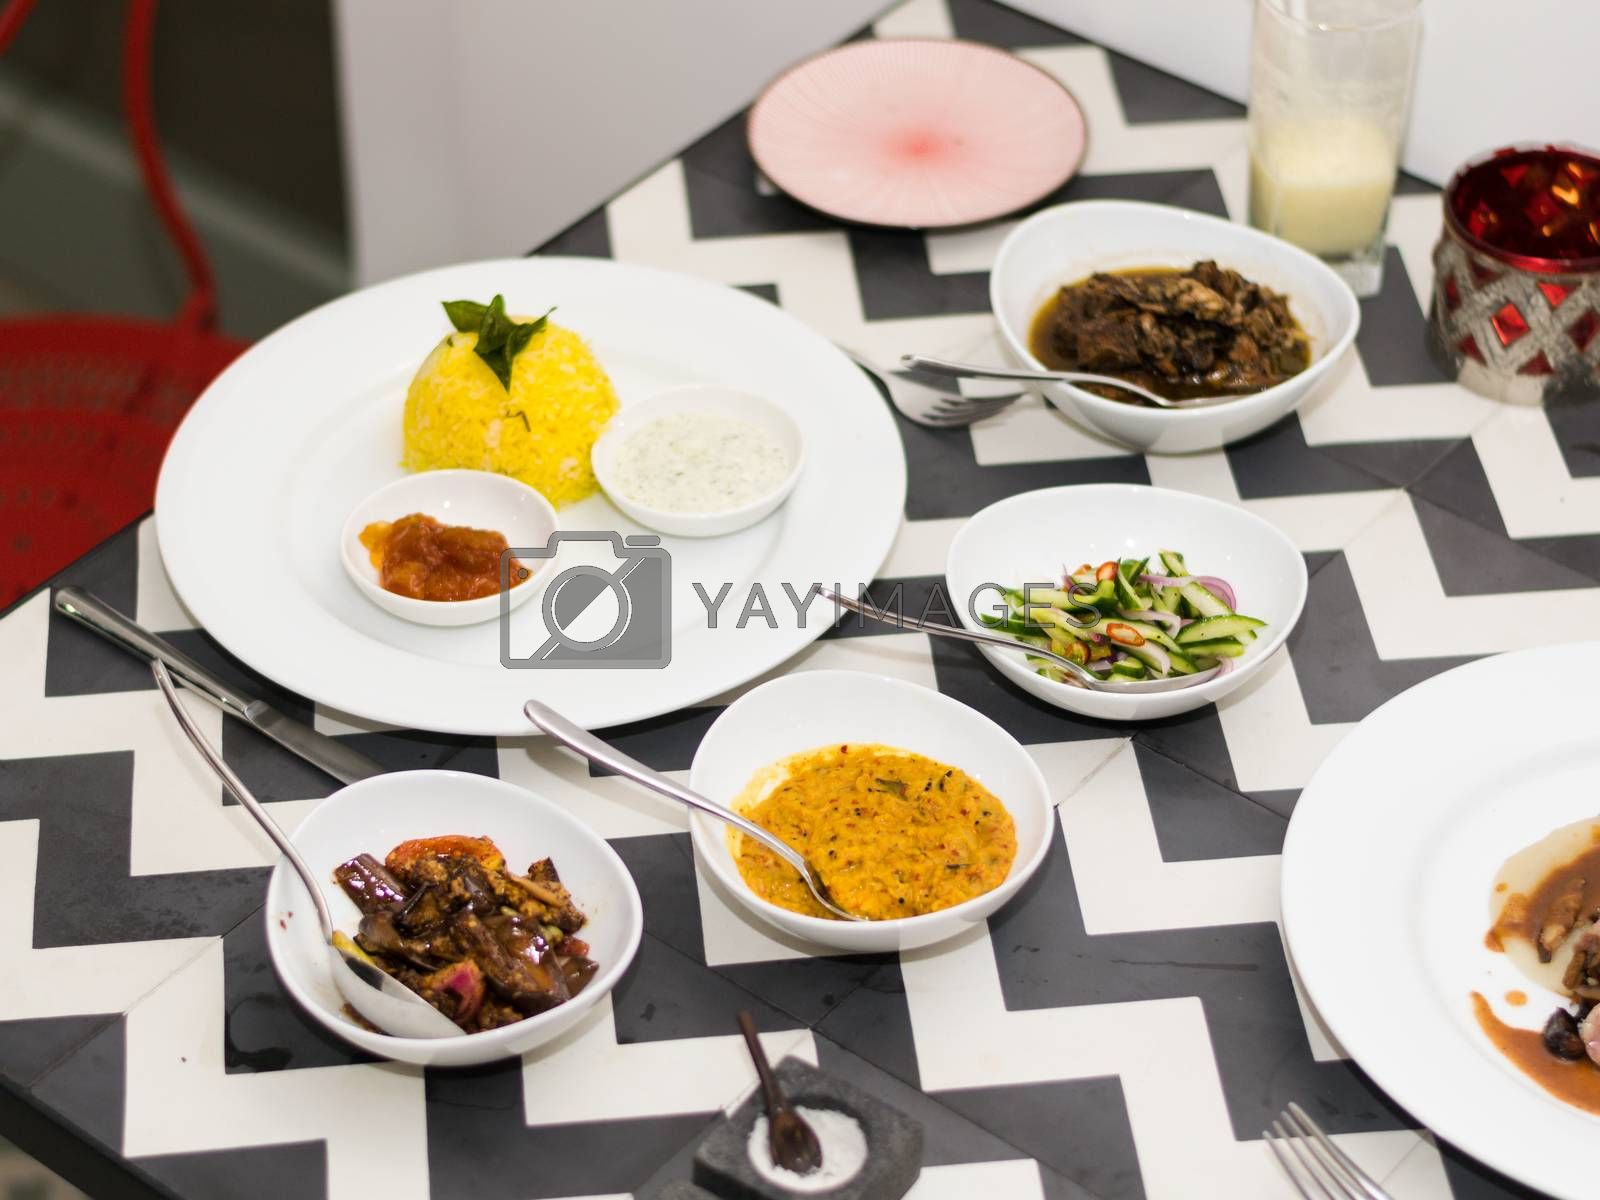 Traditional Sri Lankan curry with saffron rice, lentils, spices and greens, served in a white dish